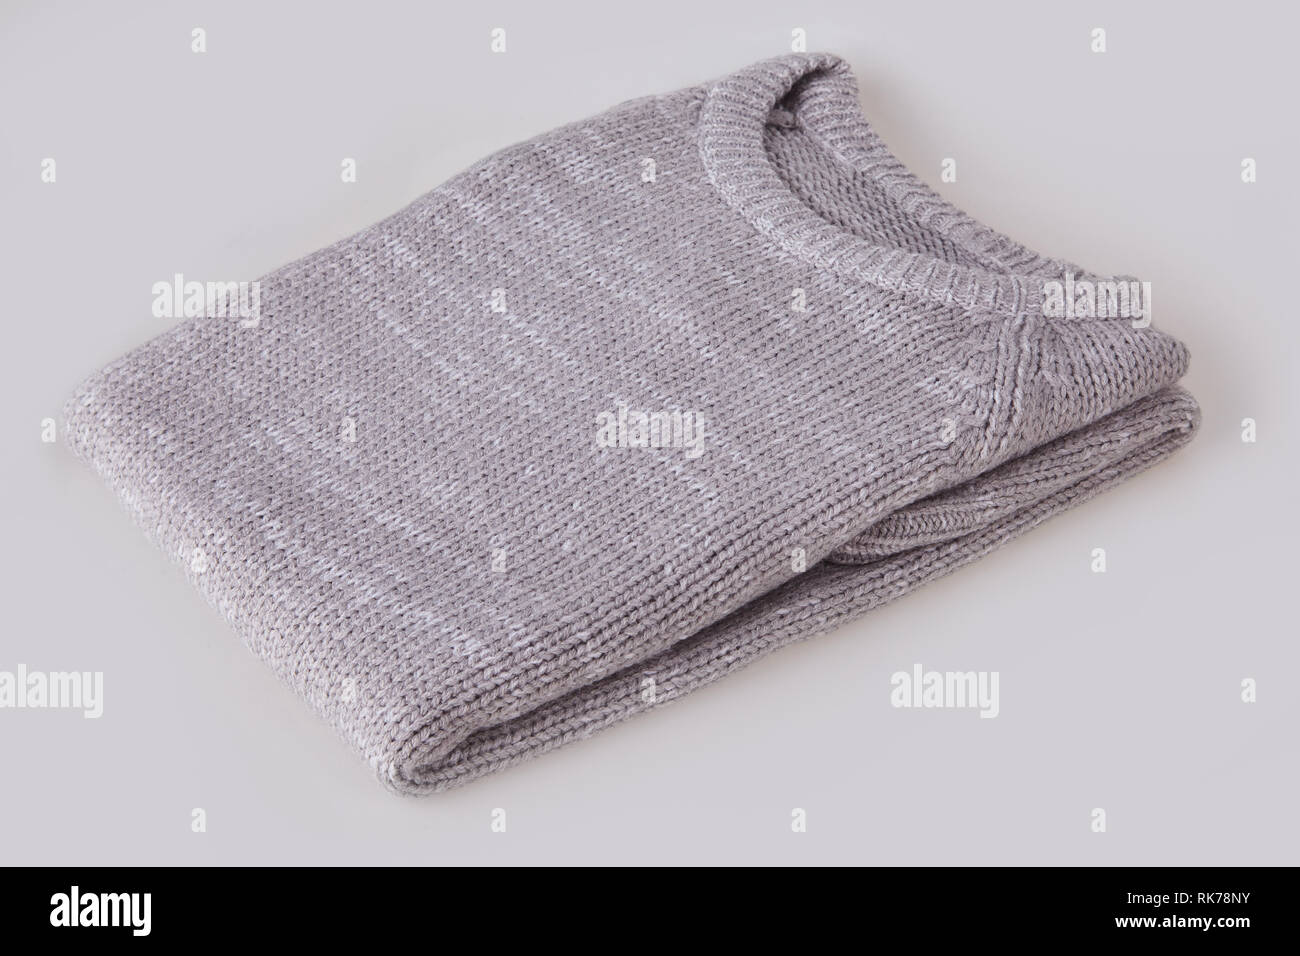 Gray folded knitted sweater with blank tag on white background. Clothes, fashion concept. Long sleeve tunic - Stock Image